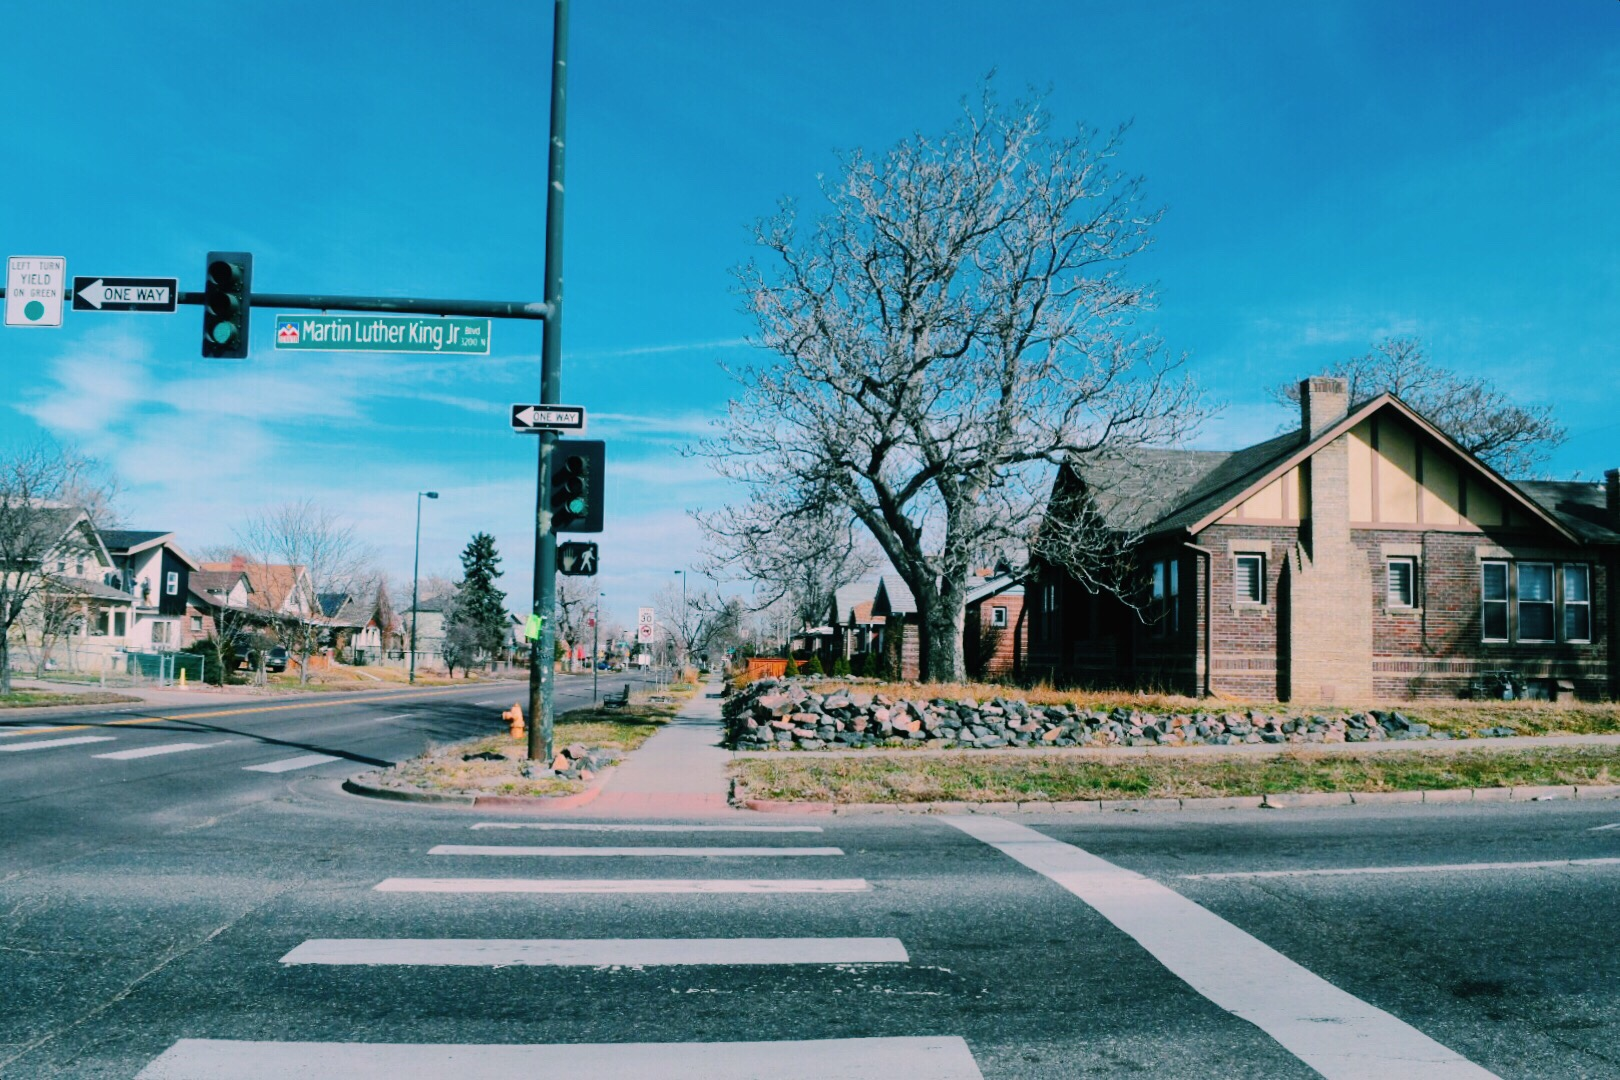 Finding the right Denver neighborhood to call home.